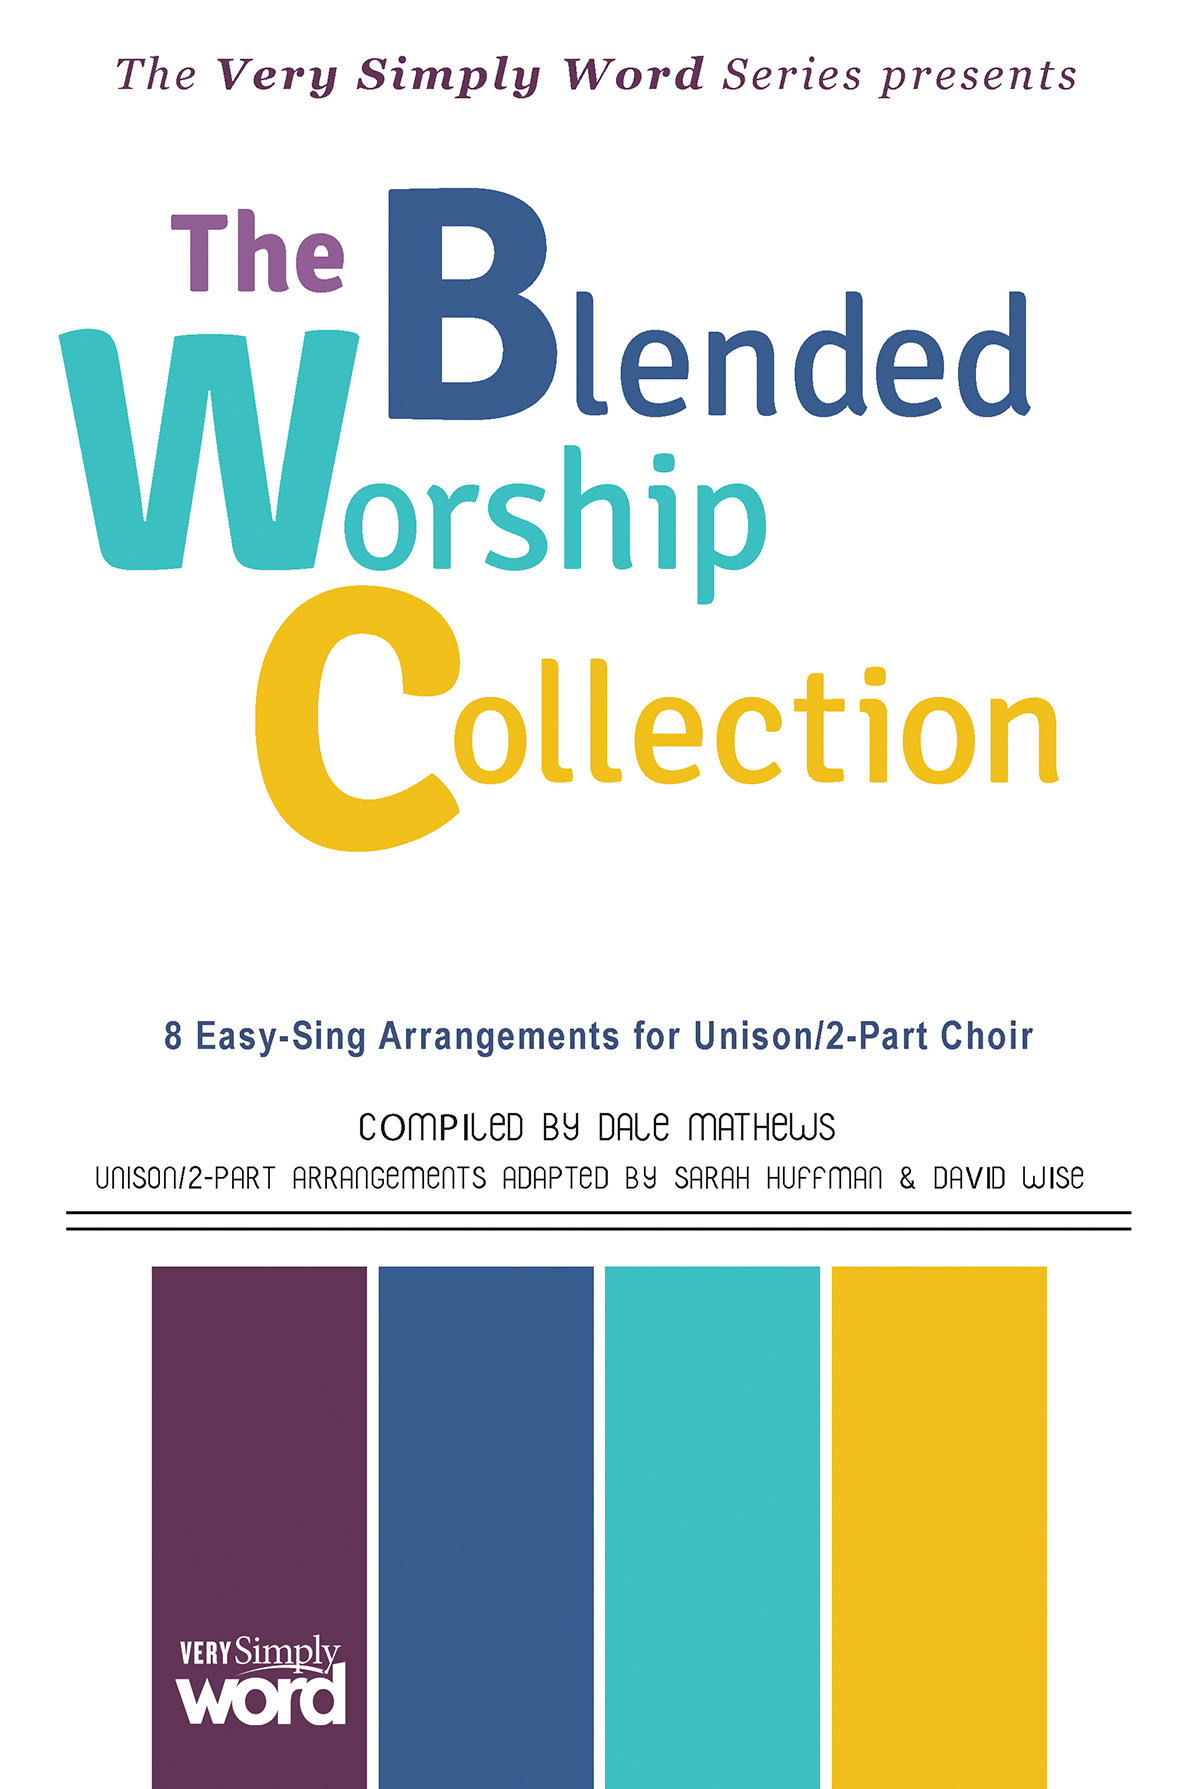 The Blended Worship Collection